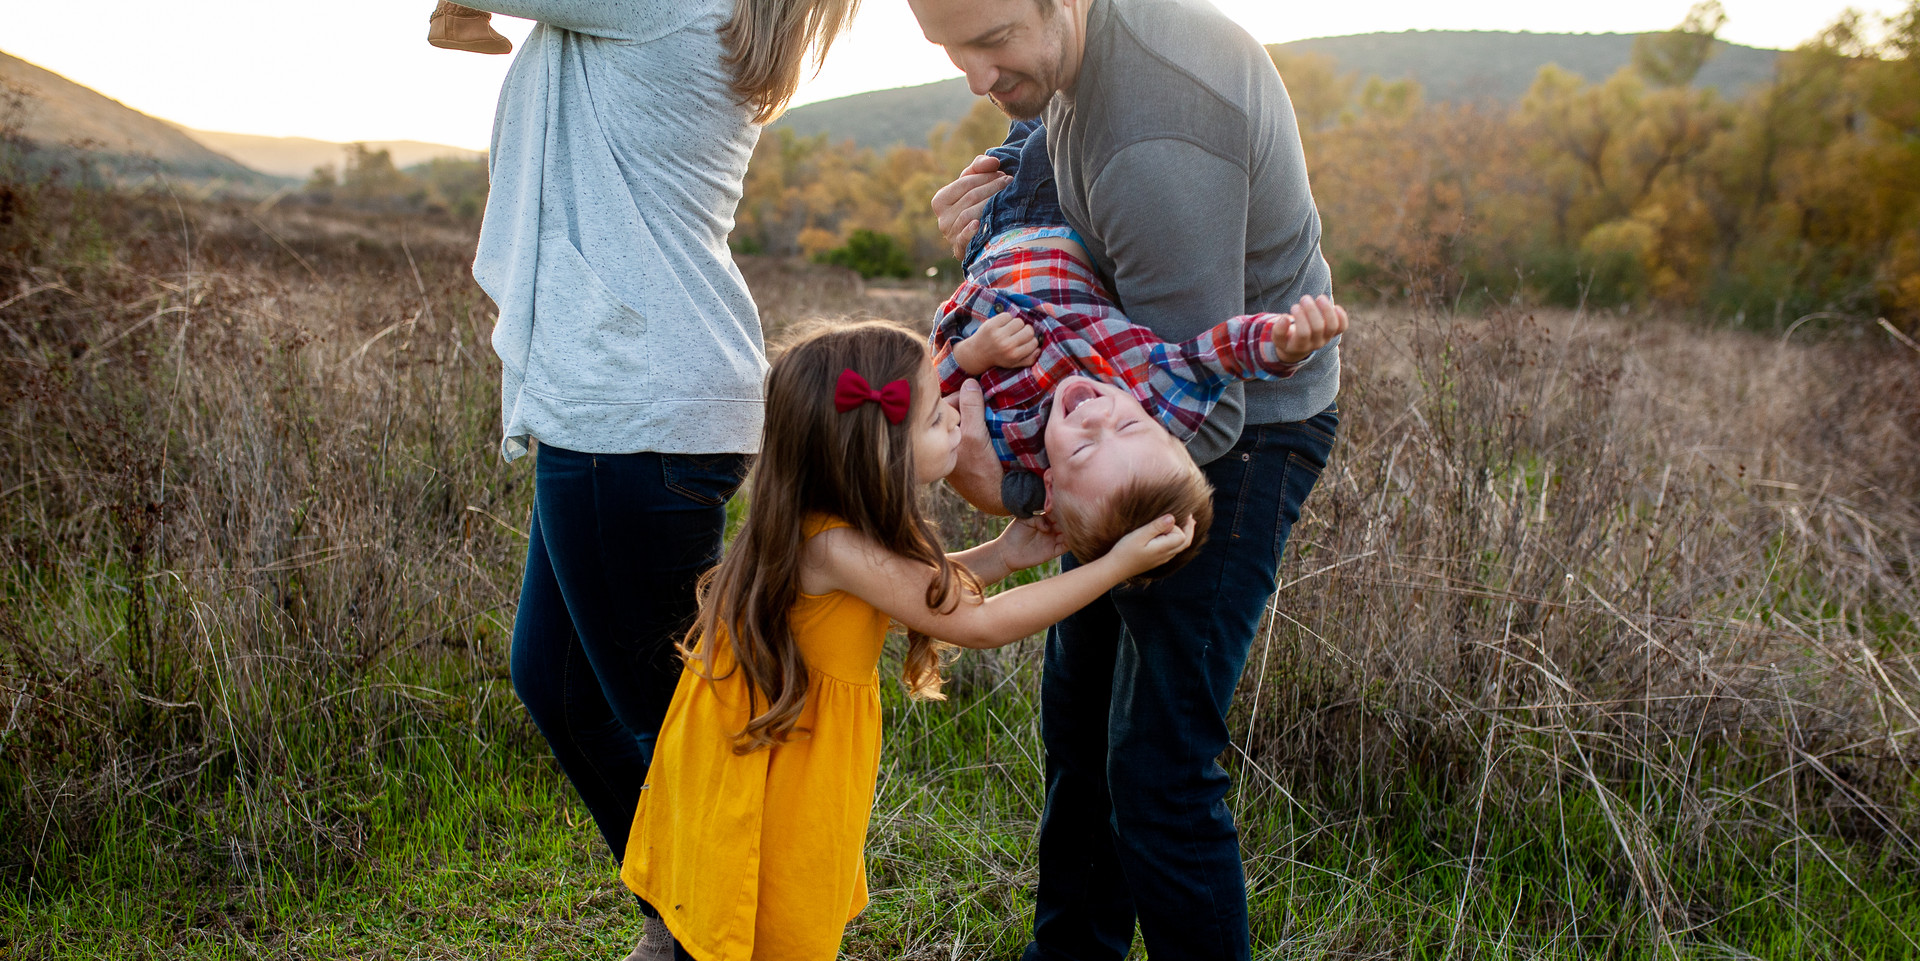 San-Diego-Family-Photographer